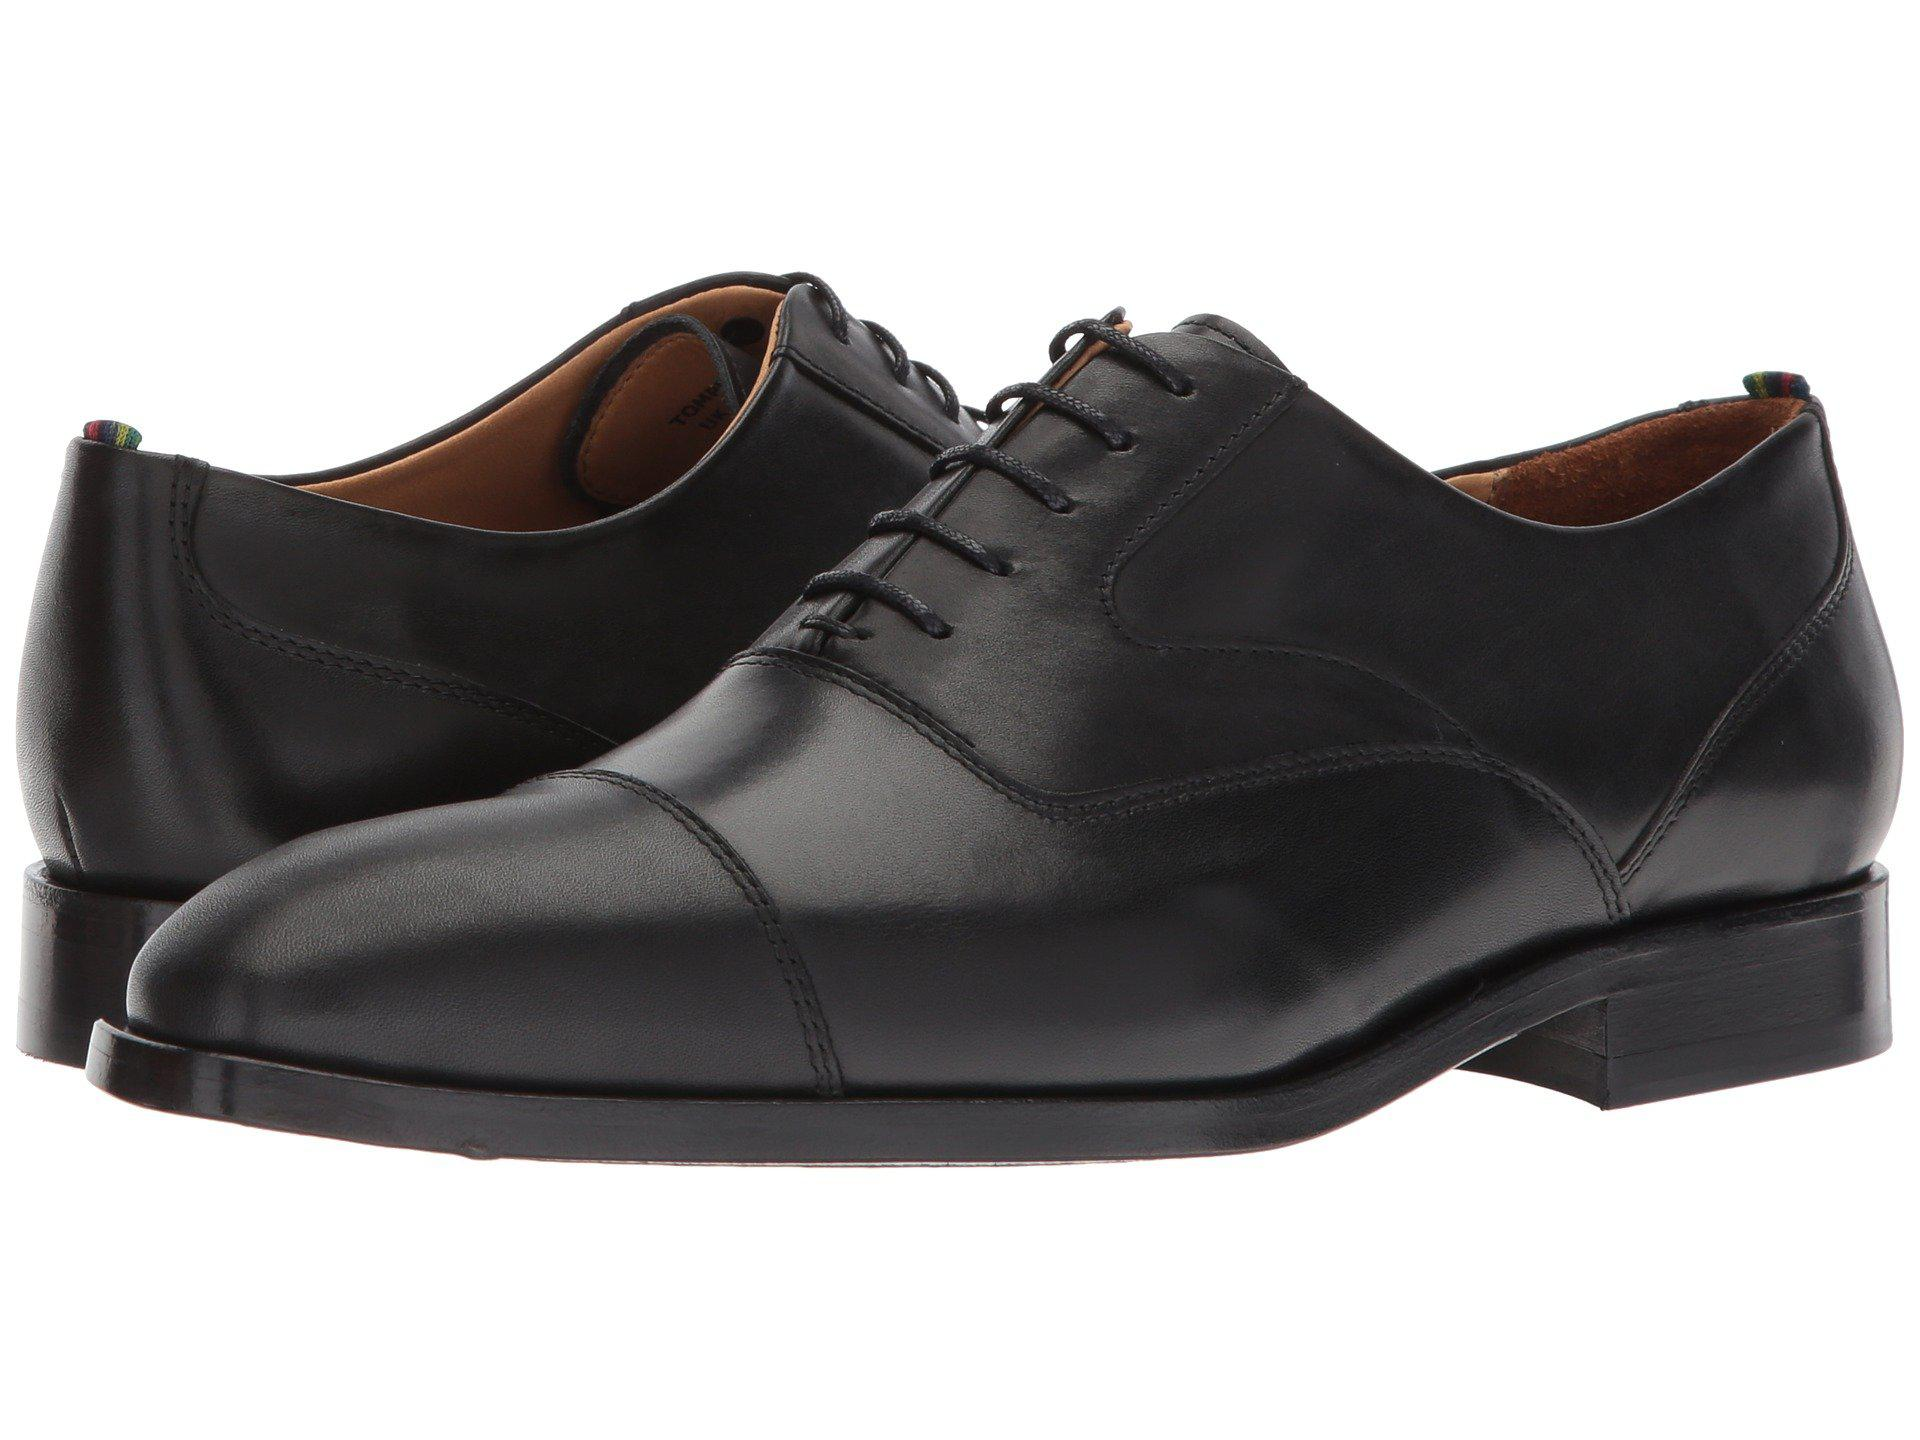 Paul Smith Men's Tompkins Leather Toe Cap Oxford Shoes - - UK 10 CGQNbKz